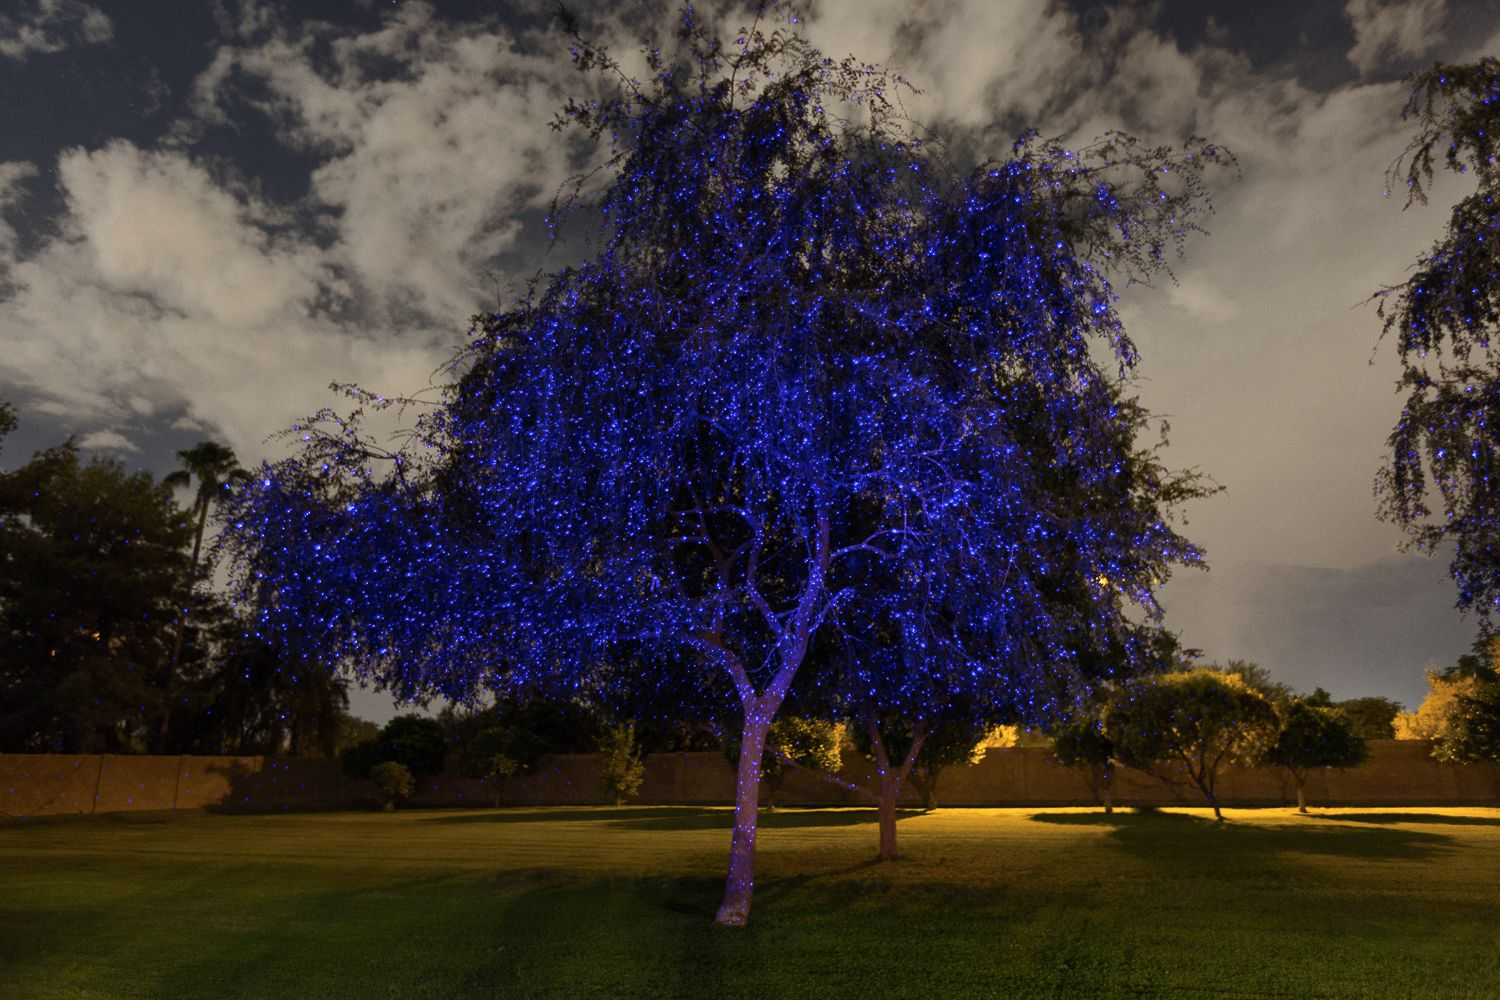 """The blue Illuminator light creates a frost look on trees and homes. Indigo Twilight (Blue) Illuminator Laser Light includes:  1 Blue Illuminator Light Flexible Stem 5"""" Ground Stake Metal Base Power Adapter UPDATE: New and Improved! Lower temperature resistance. Brighter and Wider Spray Pattern. Ability to splice into low voltage landscape cable. Shipping Now! Excellent choice for your outdoor laser Christmas lights."""